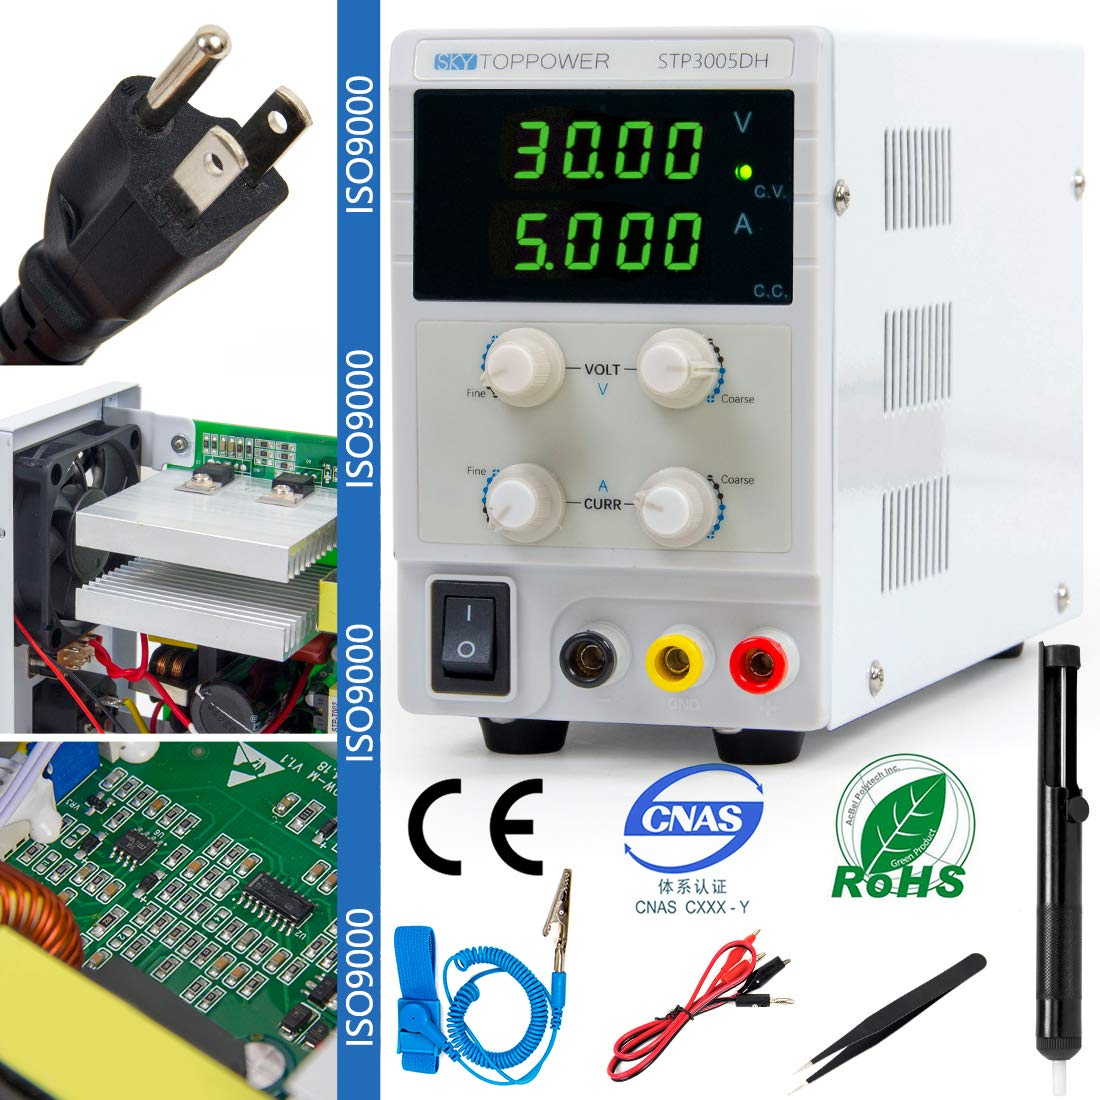 Lab Power Supply Variable DC Bench Adjustable Switching Regulated 30V 5A with 4 Bit Digital Readout LCD Display US Charge 110V/220V Adjustable for Student Engineers DIY by Sky Top Power